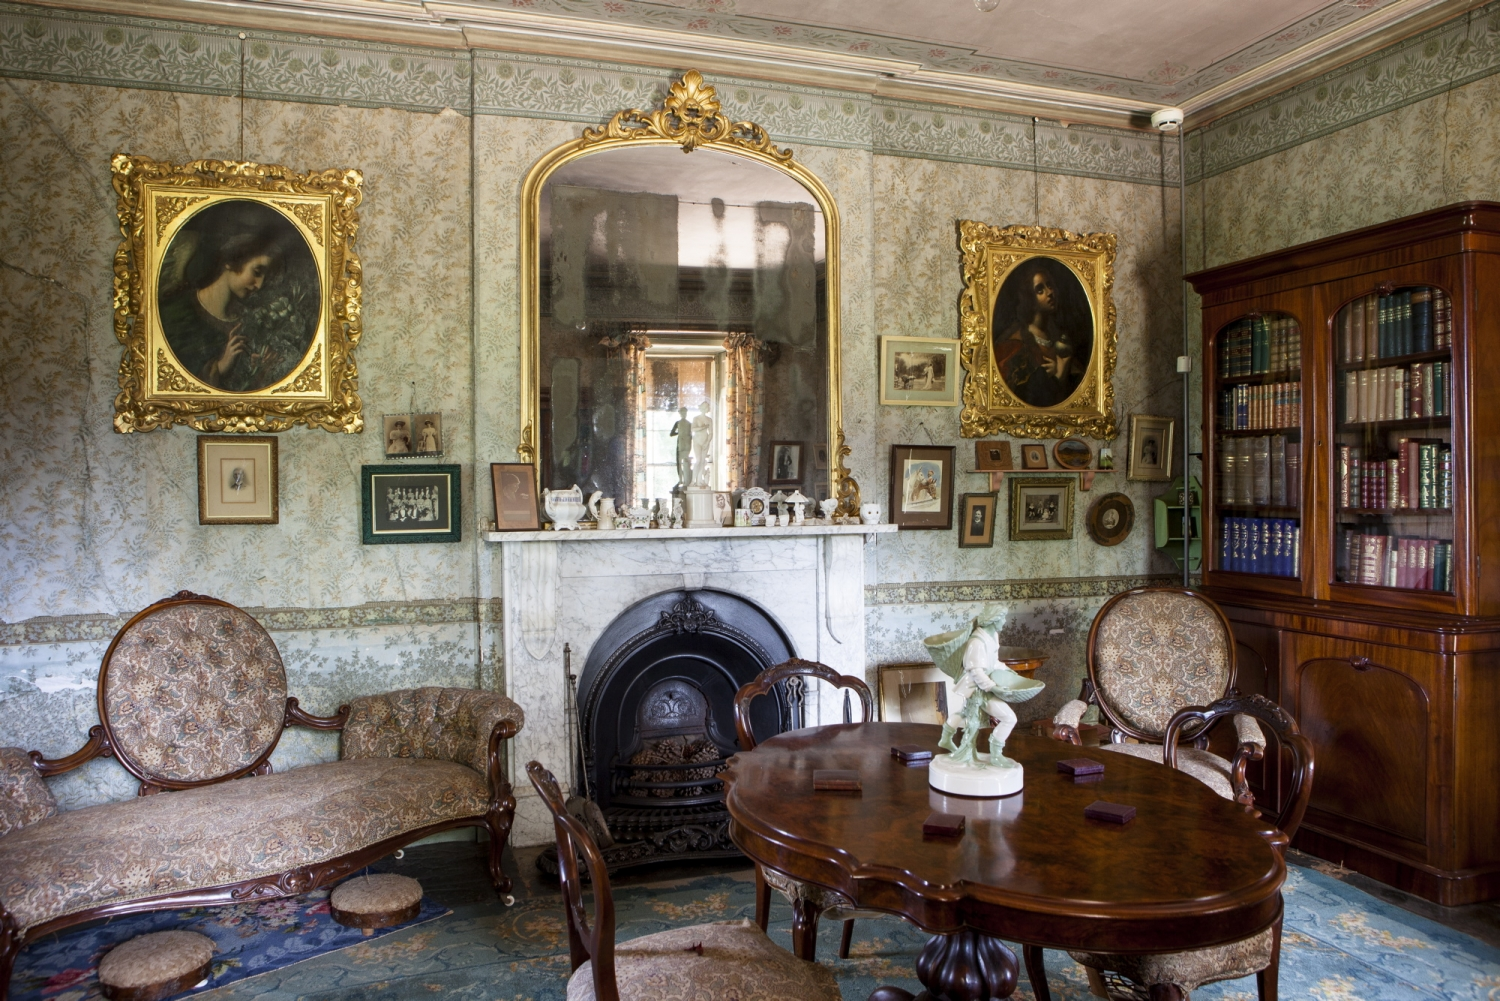 Ornately furnished room with paintings on walls above fireplace.